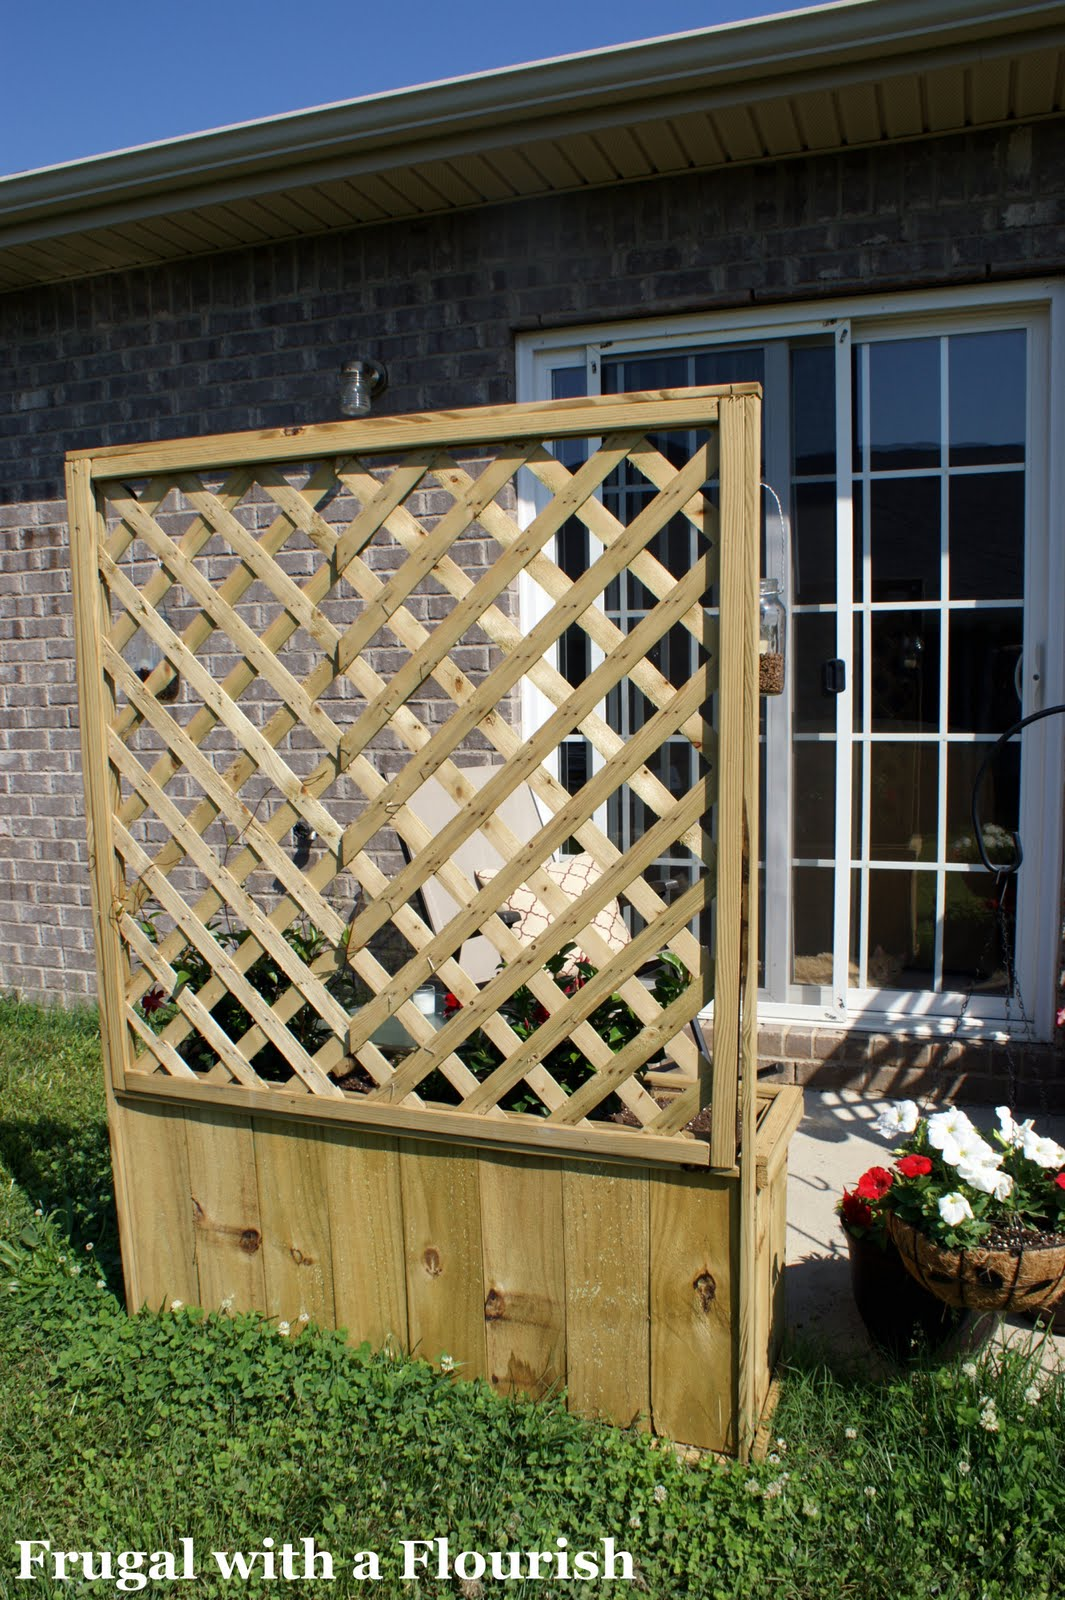 How To Build Lattice Planter Box on A Frame Building Plans